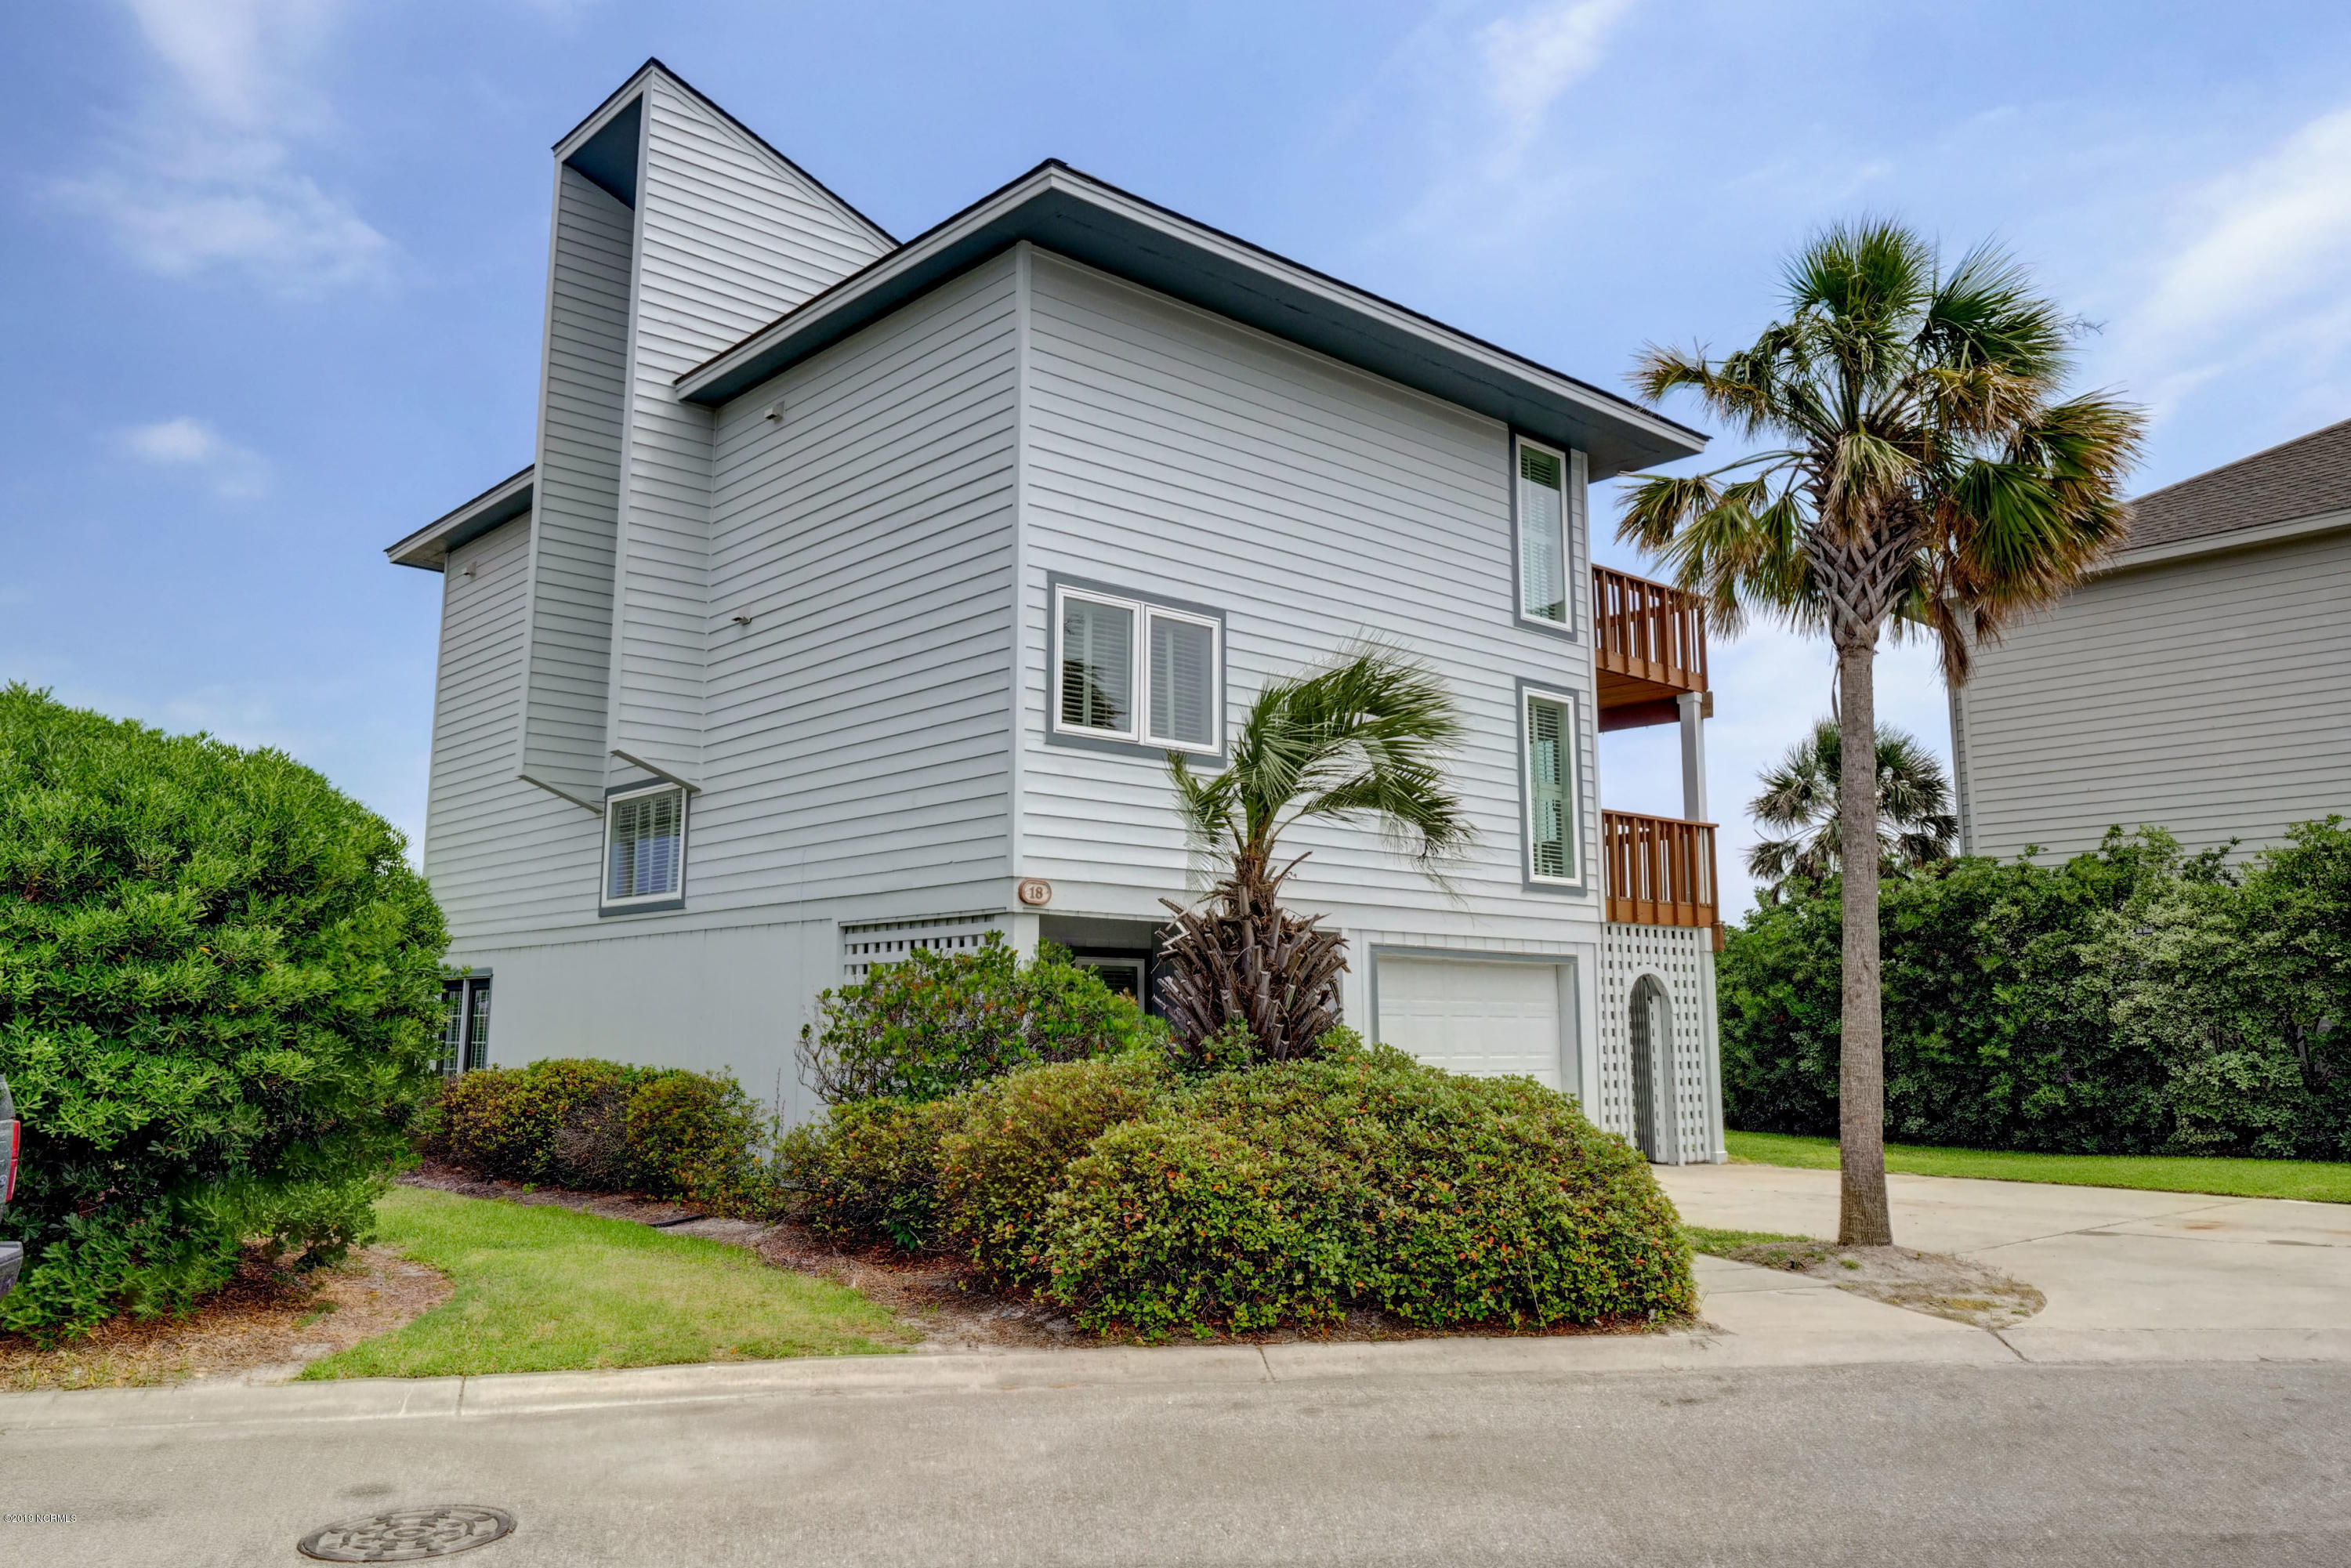 18 Sea Oats Lane, Wrightsville Beach, North Carolina 28480, 4 Bedrooms Bedrooms, 8 Rooms Rooms,3 BathroomsBathrooms,Single family residence,For sale,Sea Oats,100165963